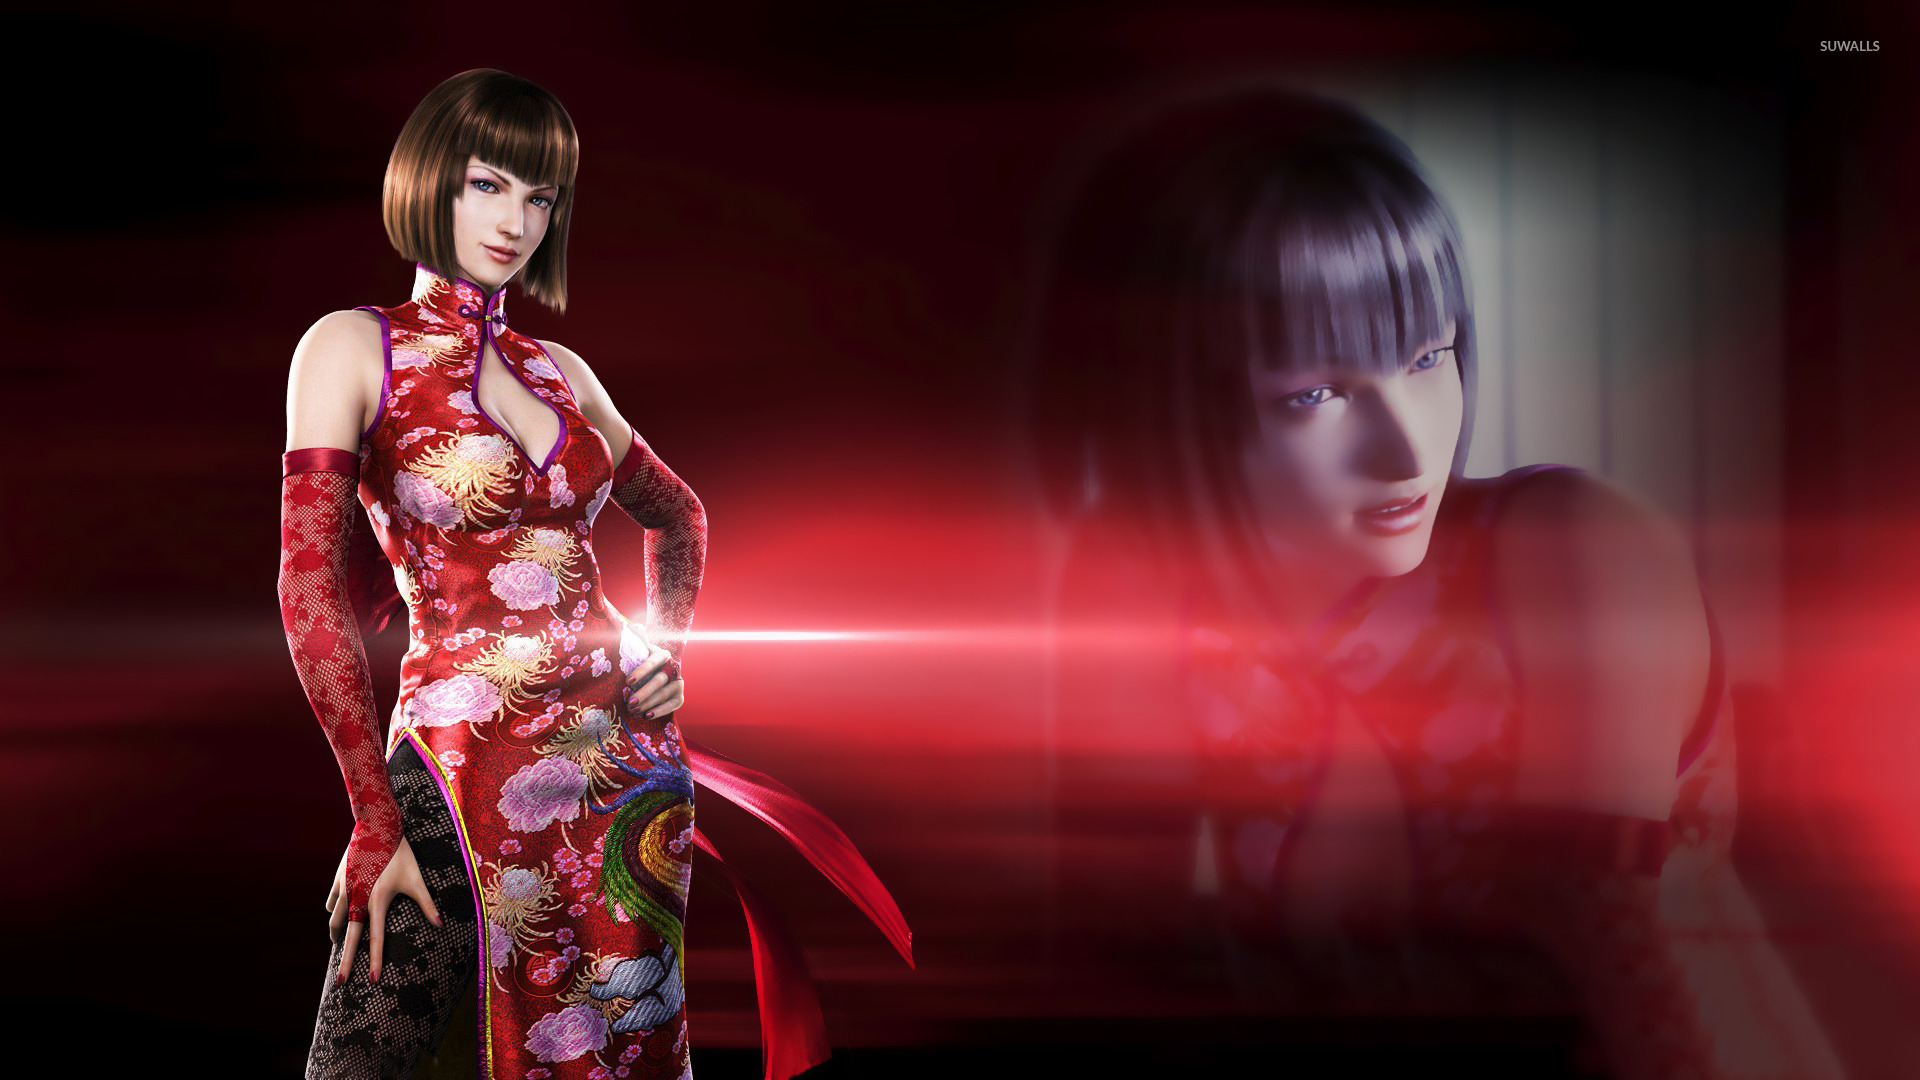 alisa bosconovitch tekken wallpapers 43 wallpapers � hd